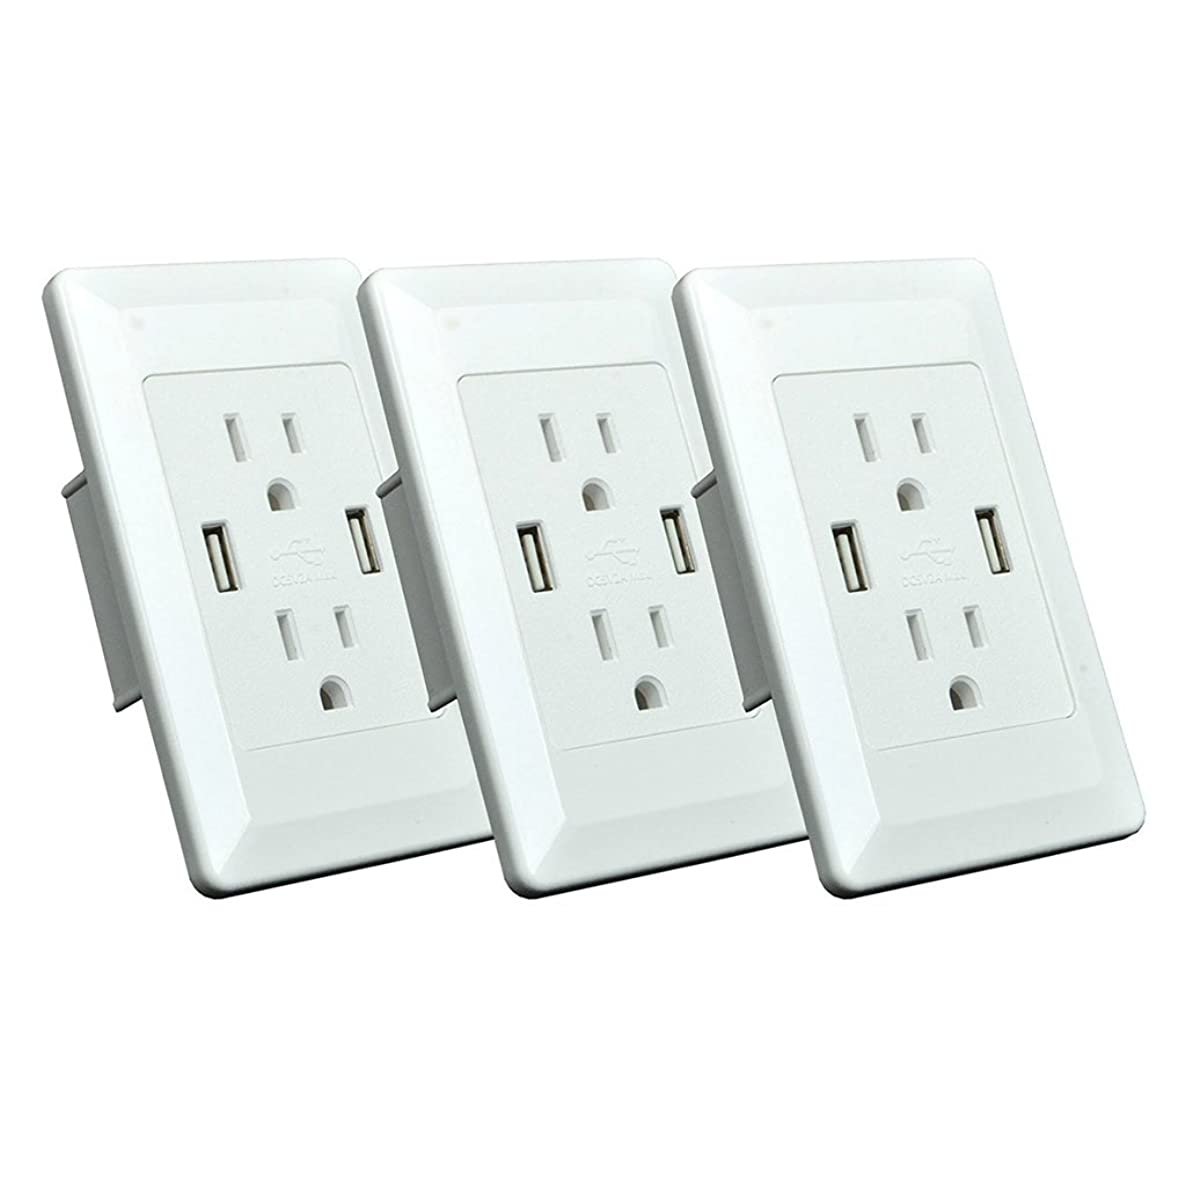 GREENCYCLE 3 Pack Smart Dual USB Charger Outlet Panel Receptacles 15A Electric Wall Charger Powe Plate Dock Station Socket